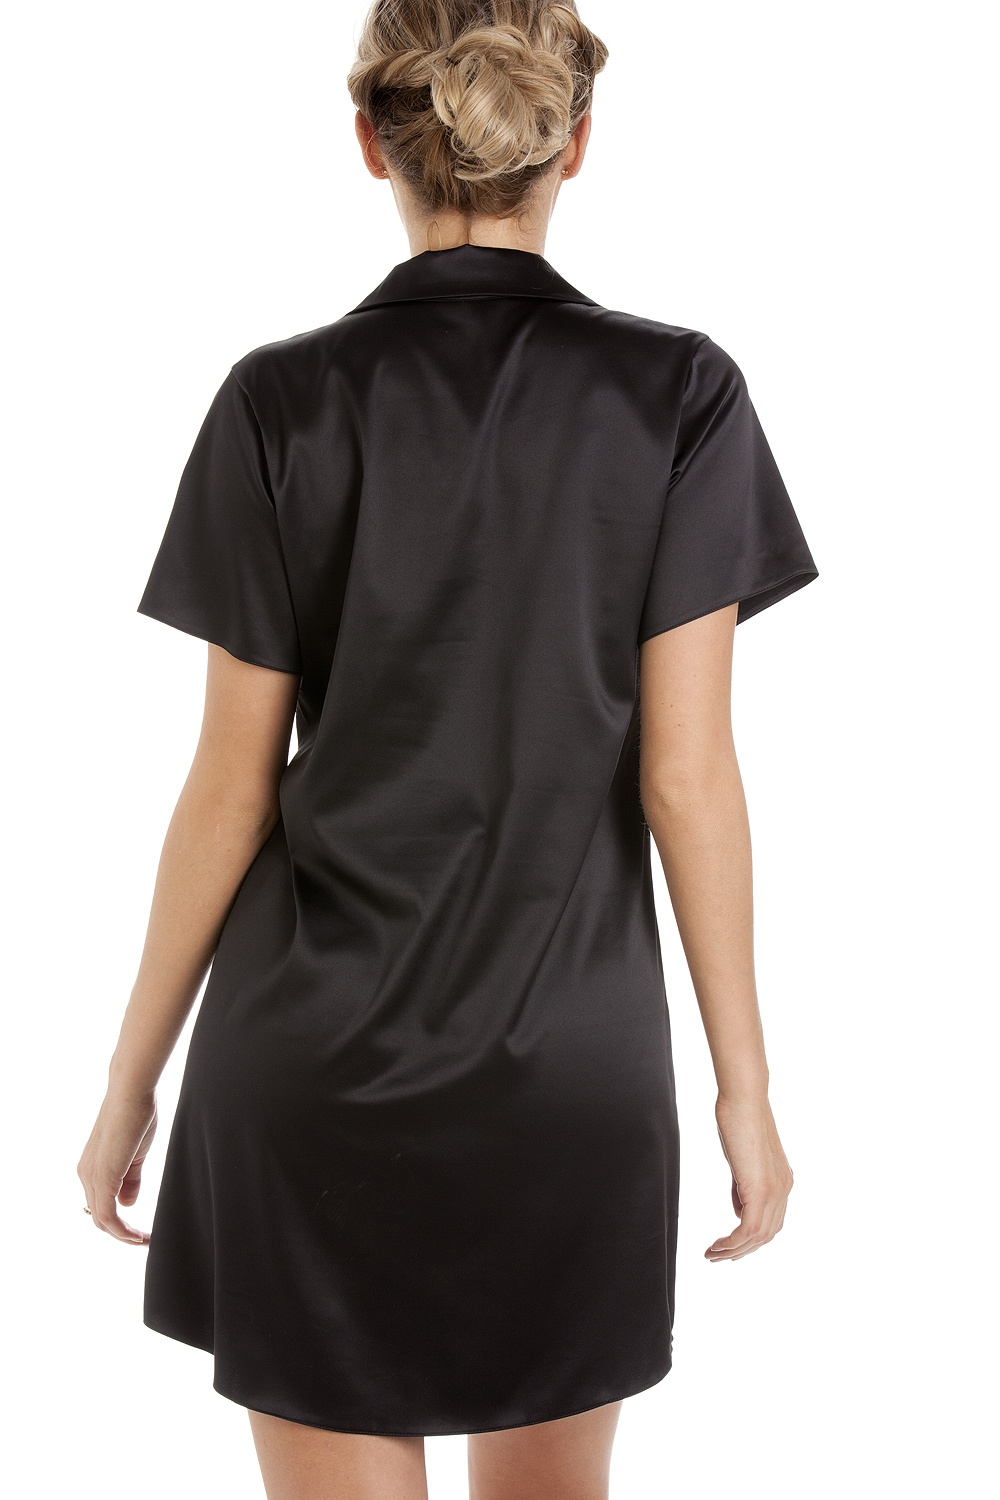 Find great deals on eBay for black night shirt. Shop with confidence.